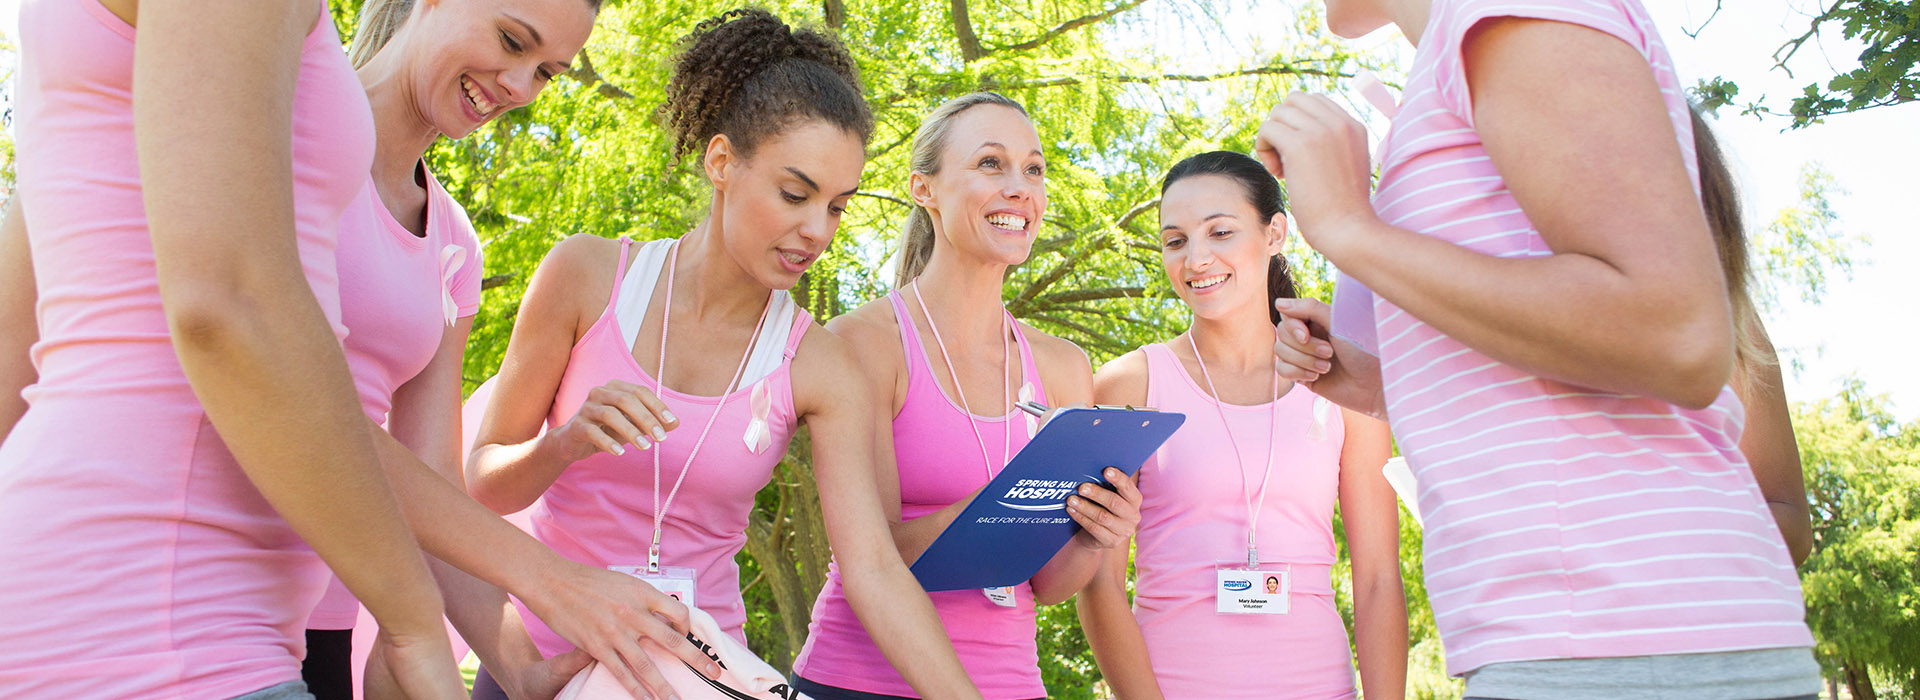 Women with custom printed lanyards and promotional marketing apparel participating in healthcare wellness event